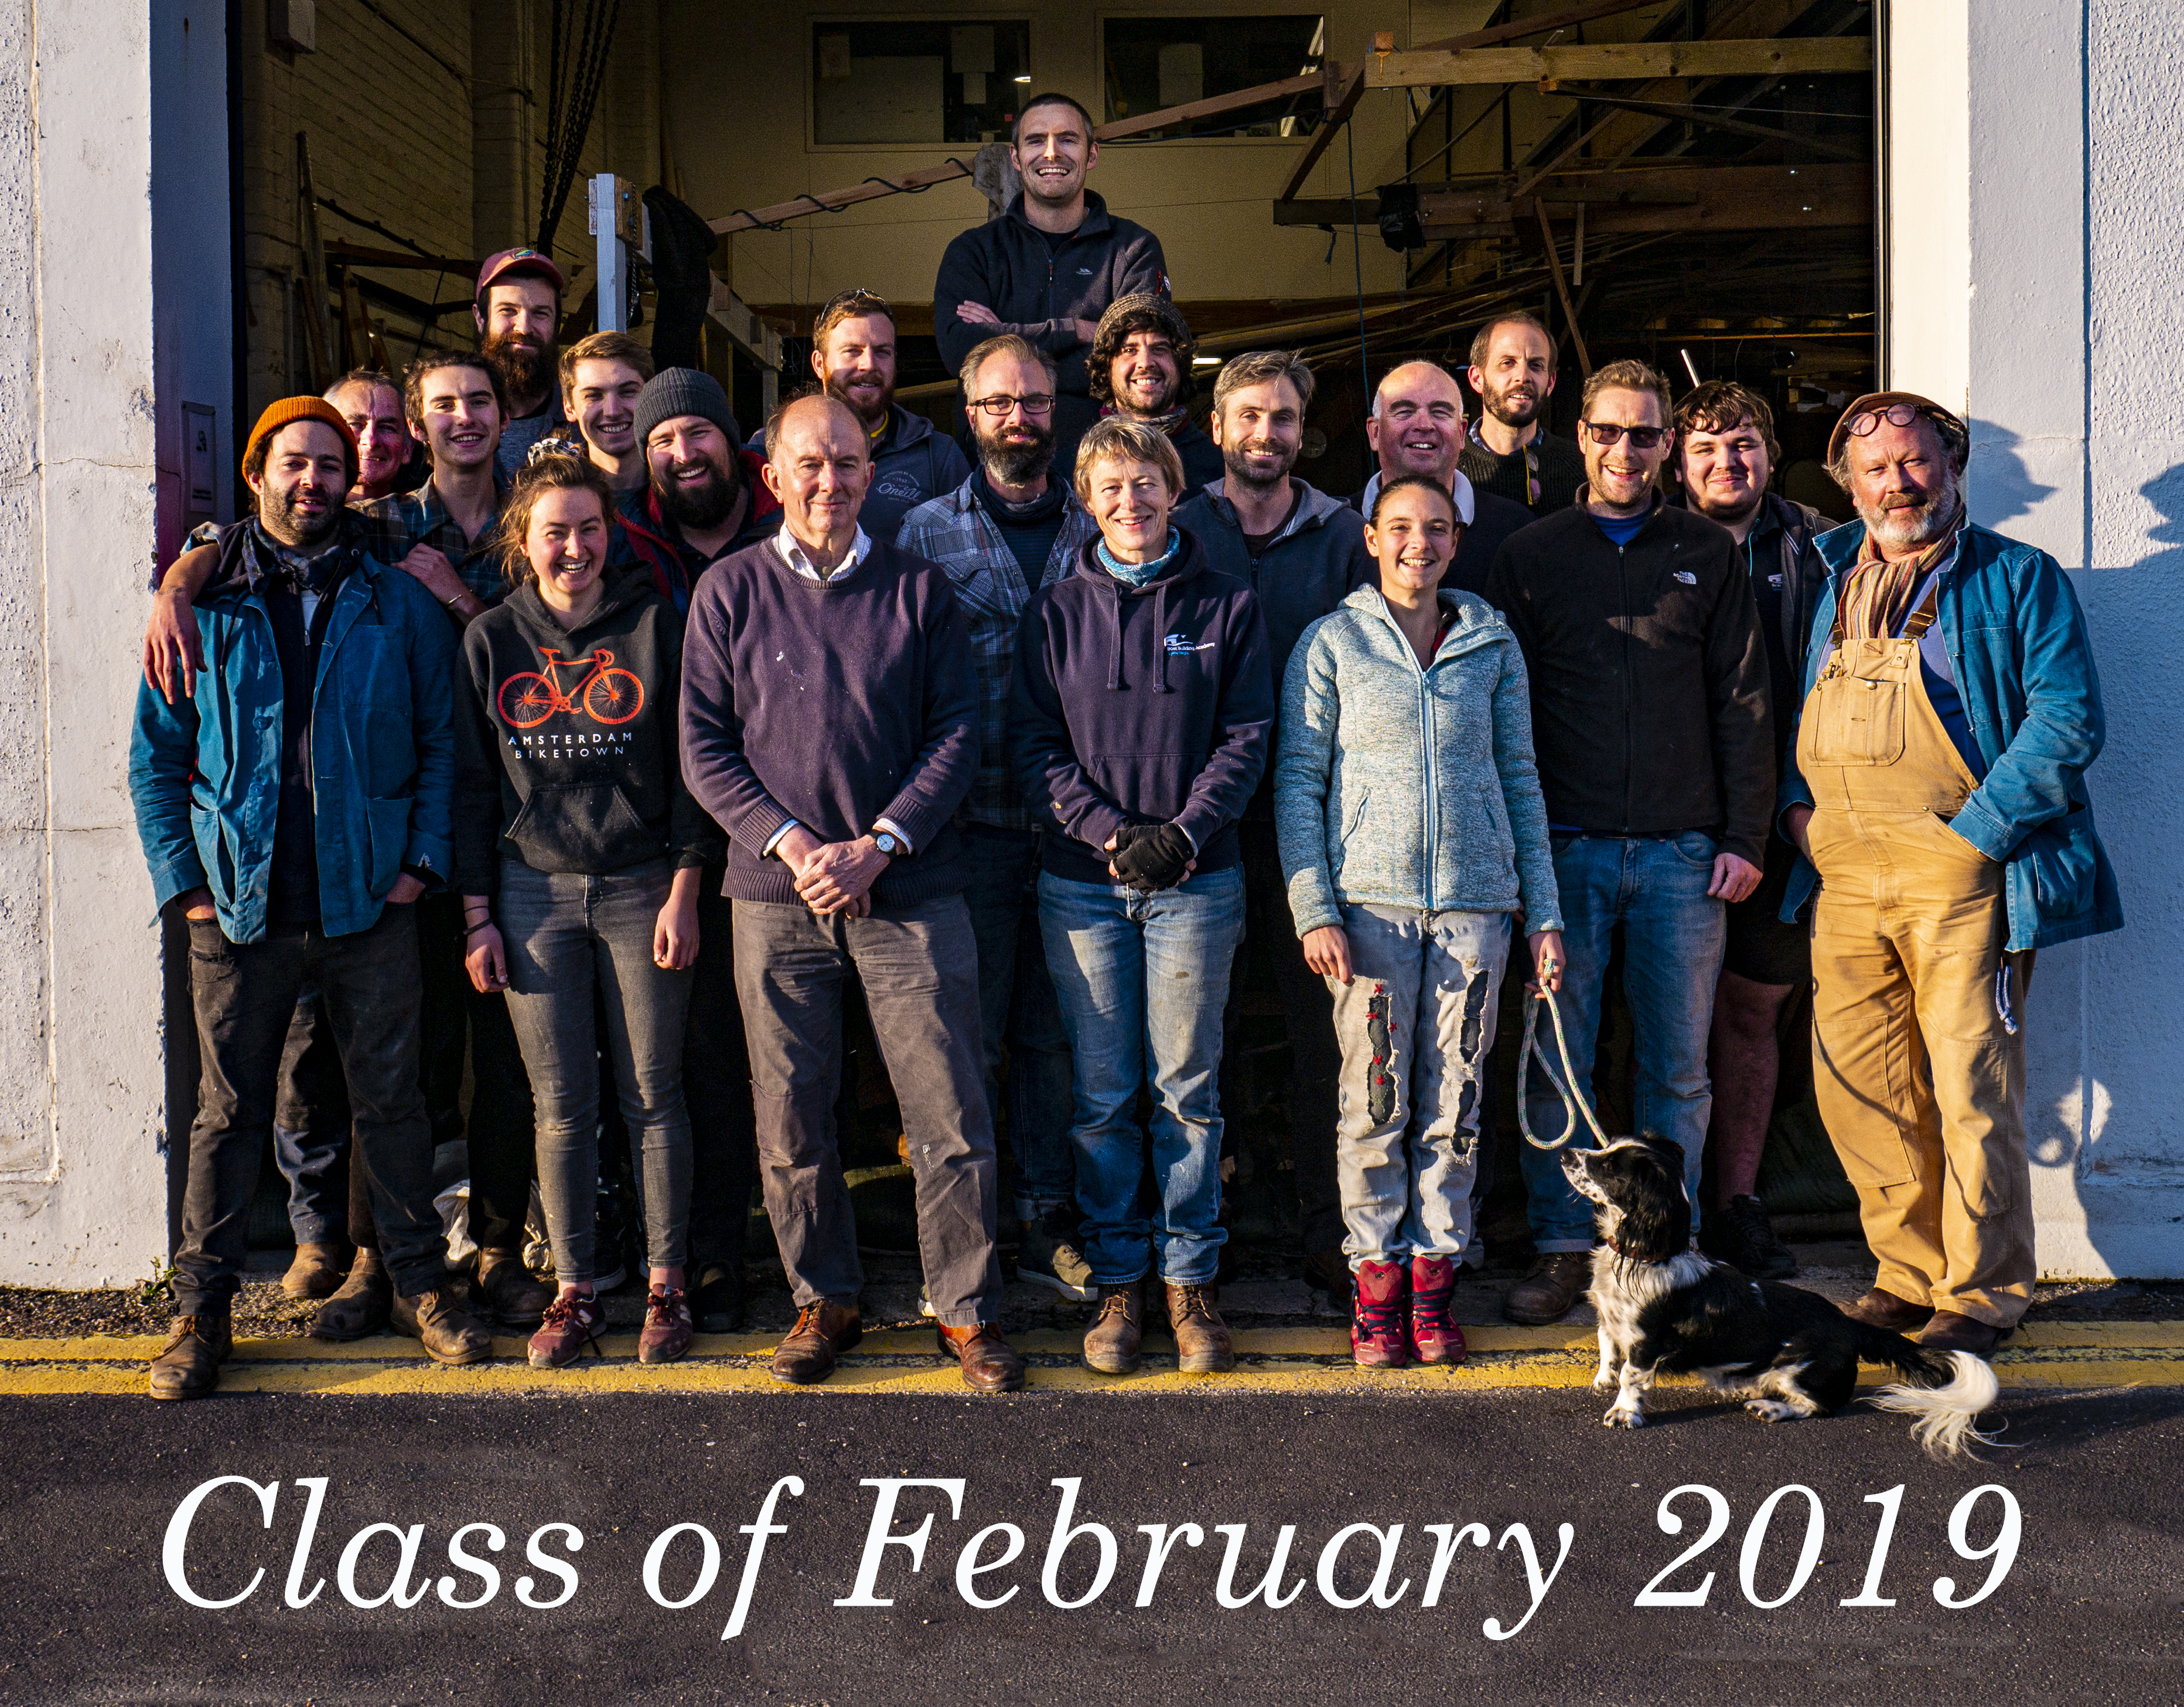 Boat Building Academy Class of Feb 2019 (c) Boat Building Academy